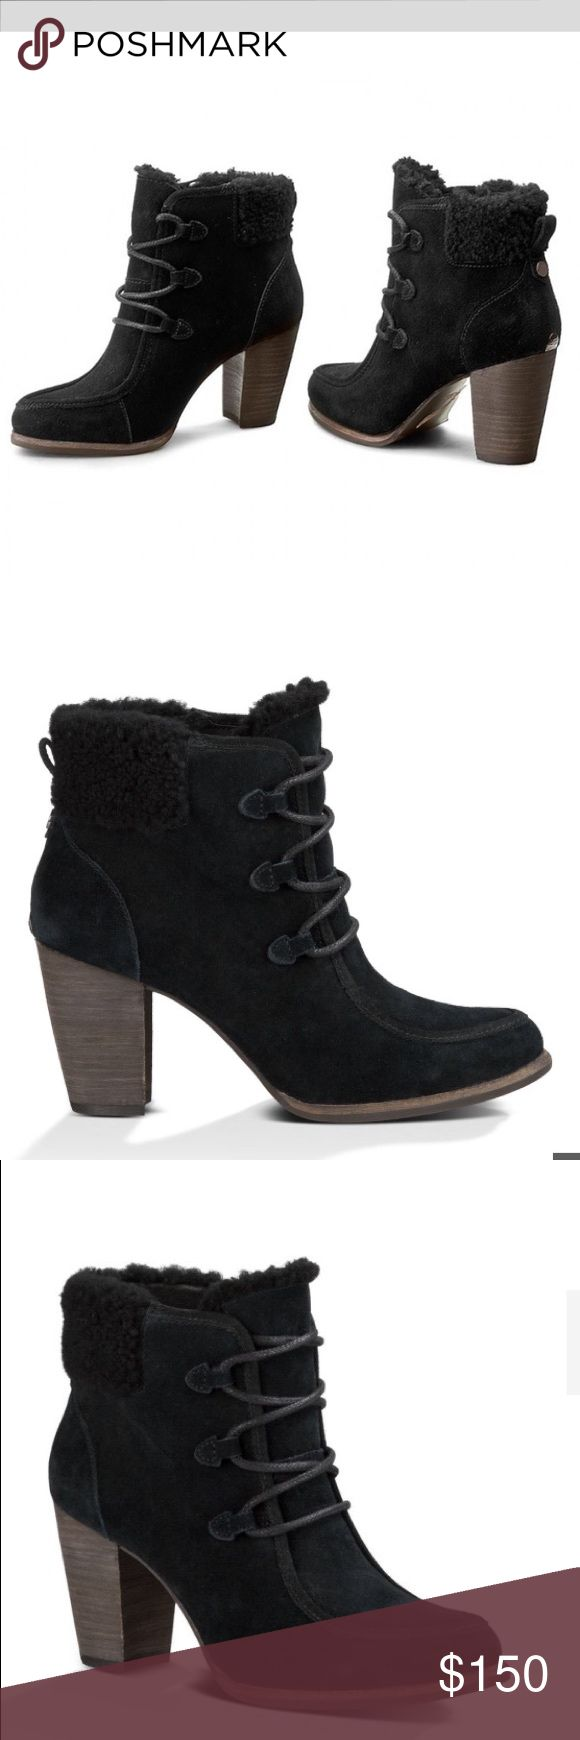 """Women's Australian UGG 'Analise' Black, 8.5 Women's Australian UGG 'Analise' Heeled Platform, Black, 8.5 SN 1008620. Model: 1008620 Modeled on traditional hiking boots, the Analise fashionably incorporates ghillie lace keepers and a curly sheepskin cuff on luxe suede. All of this sits comfortably on a cushioning insole, stacked heel, and rubber outsole. Details: Suede Lined with sheepskin 3"""" heel ¼"""" platform Rear pull tab Sheepskin cuff and tongue lining PORON® foam insole lined with leather…"""